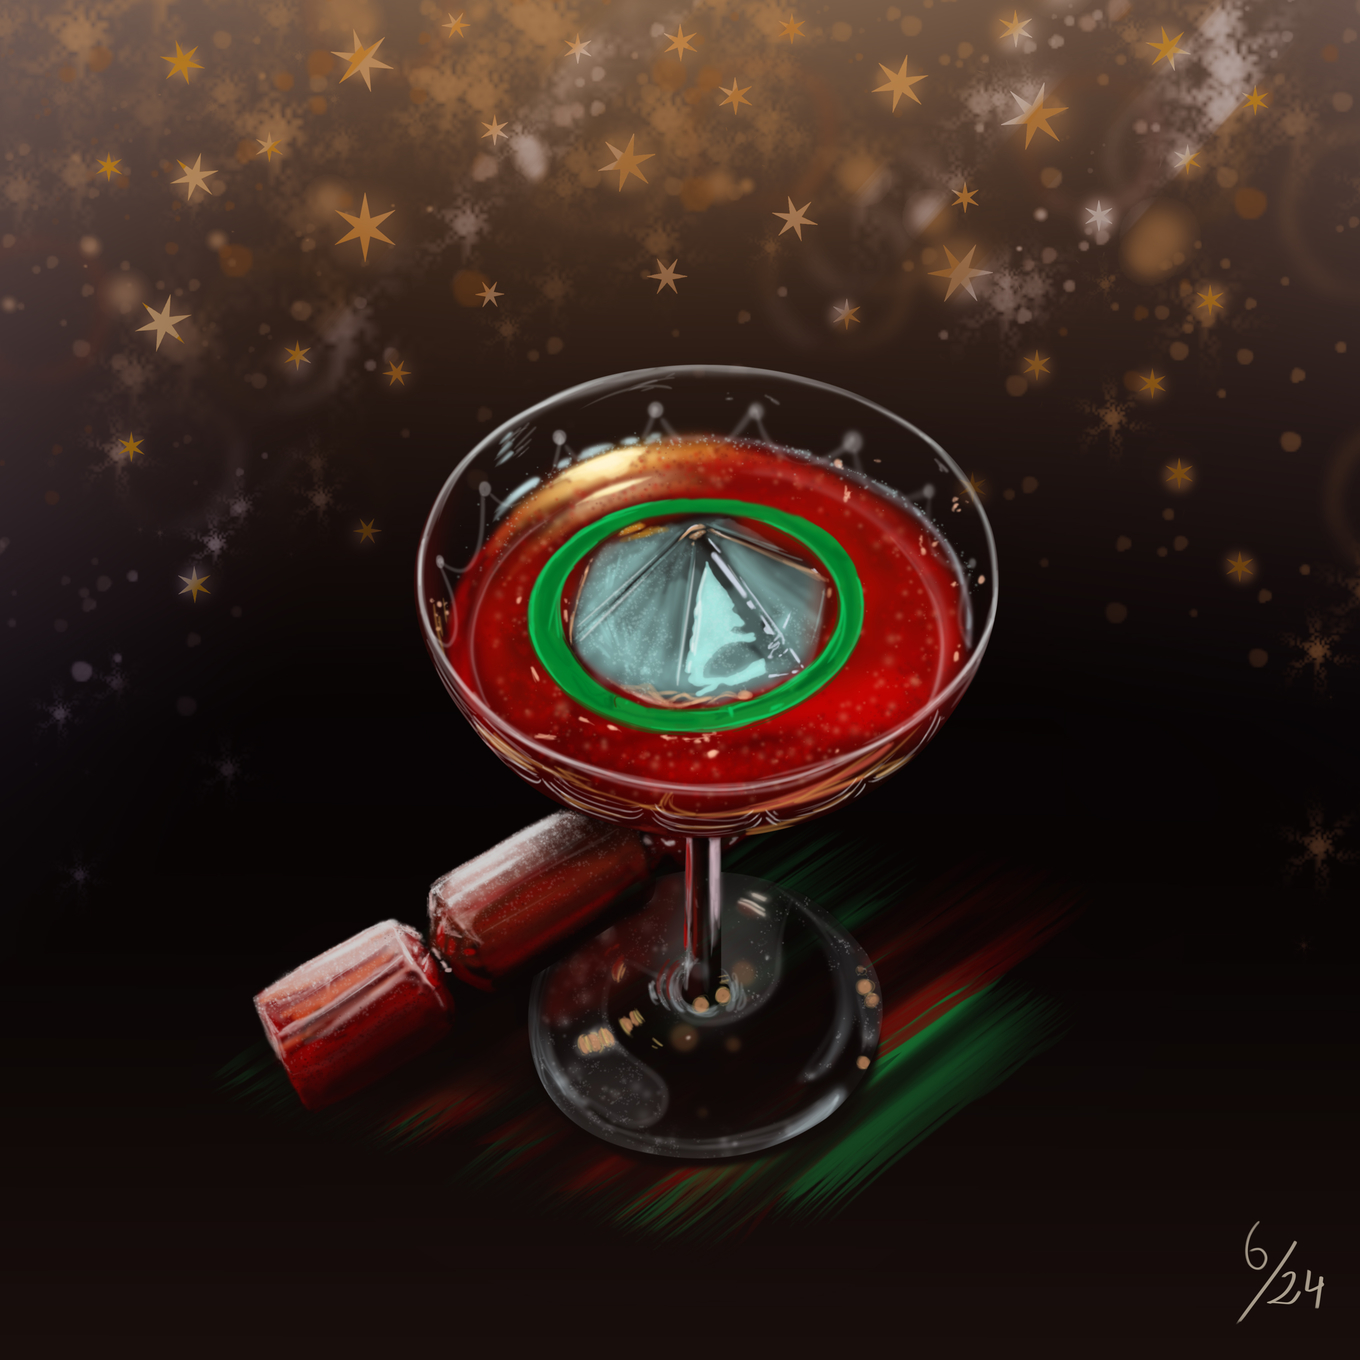 Crimbo Cocktail Calendar 6/24 image 1